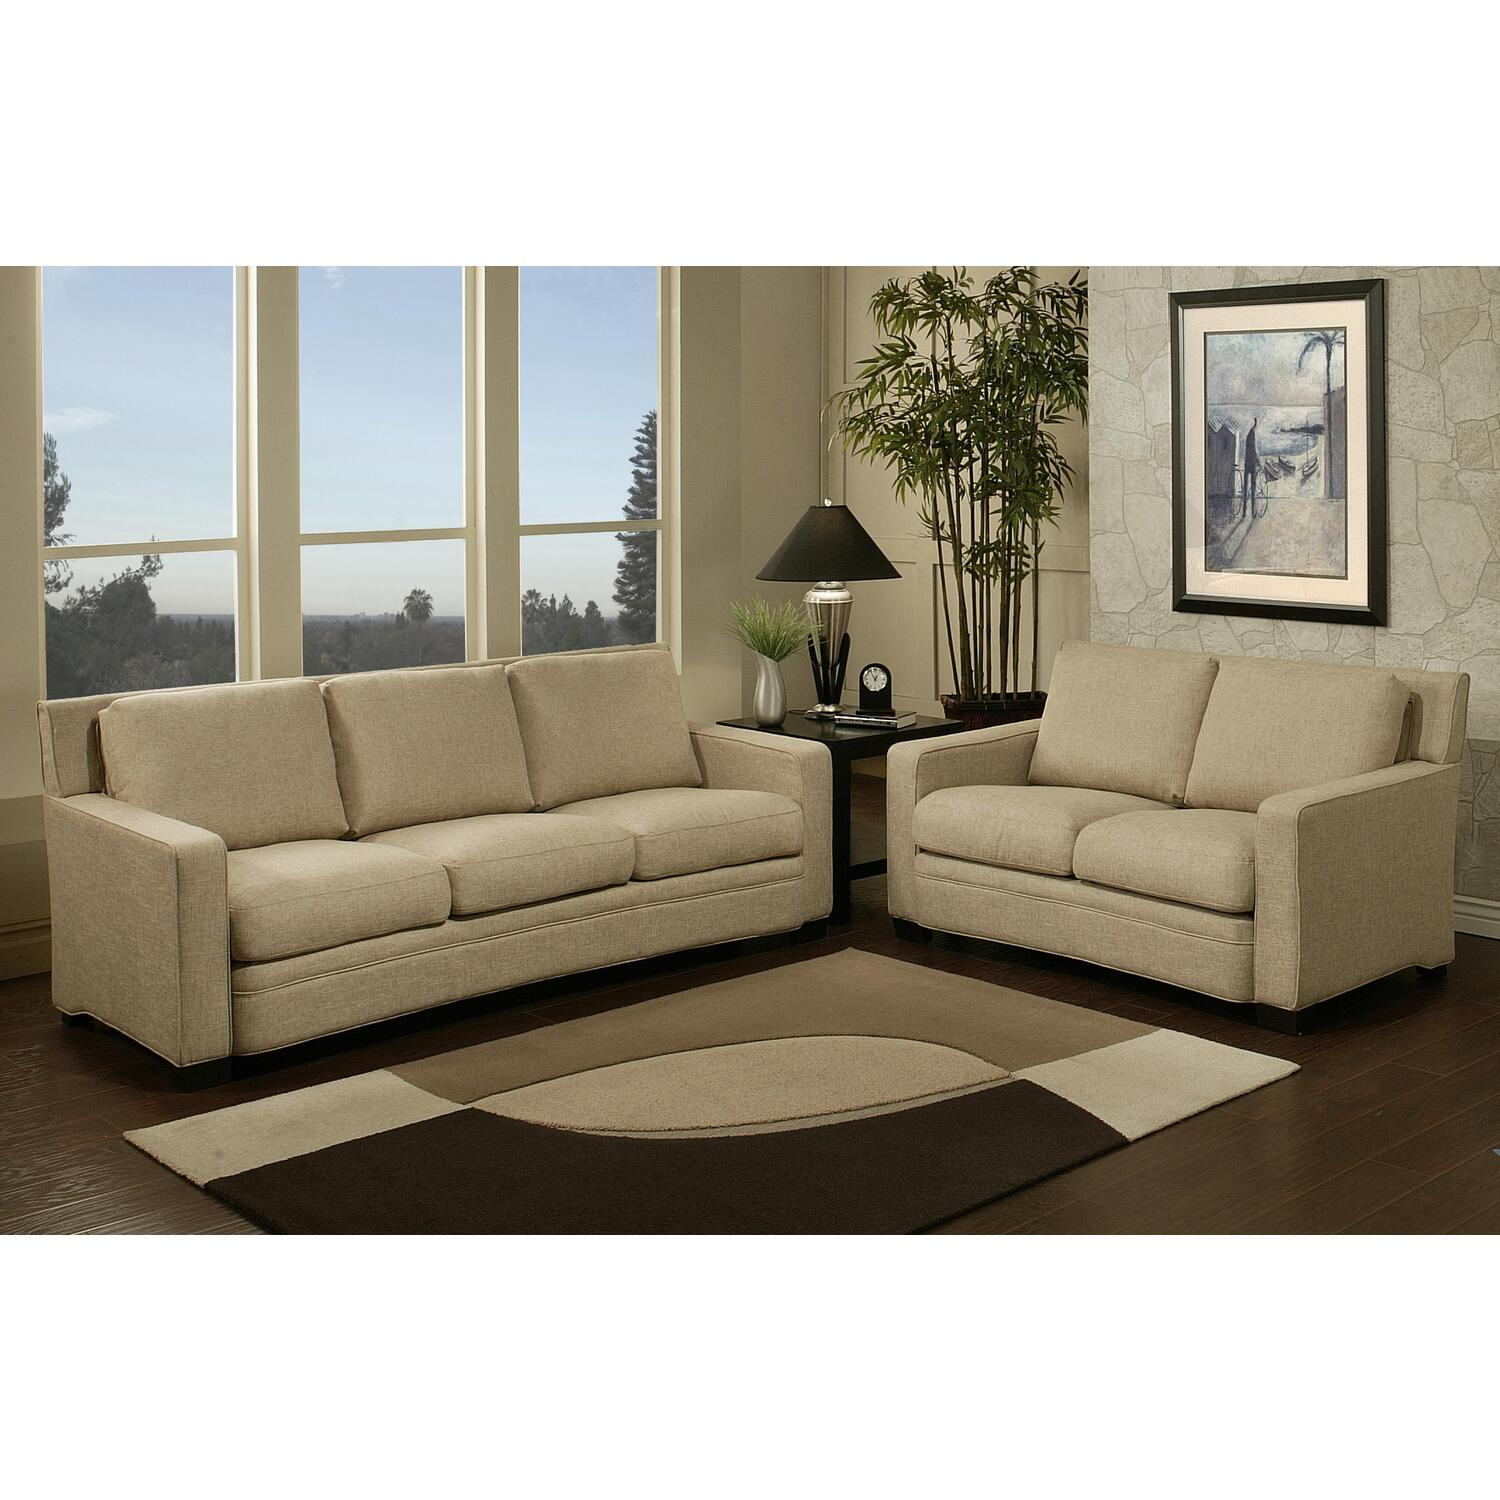 Fabric sofa set interior home design for Couch sofa set